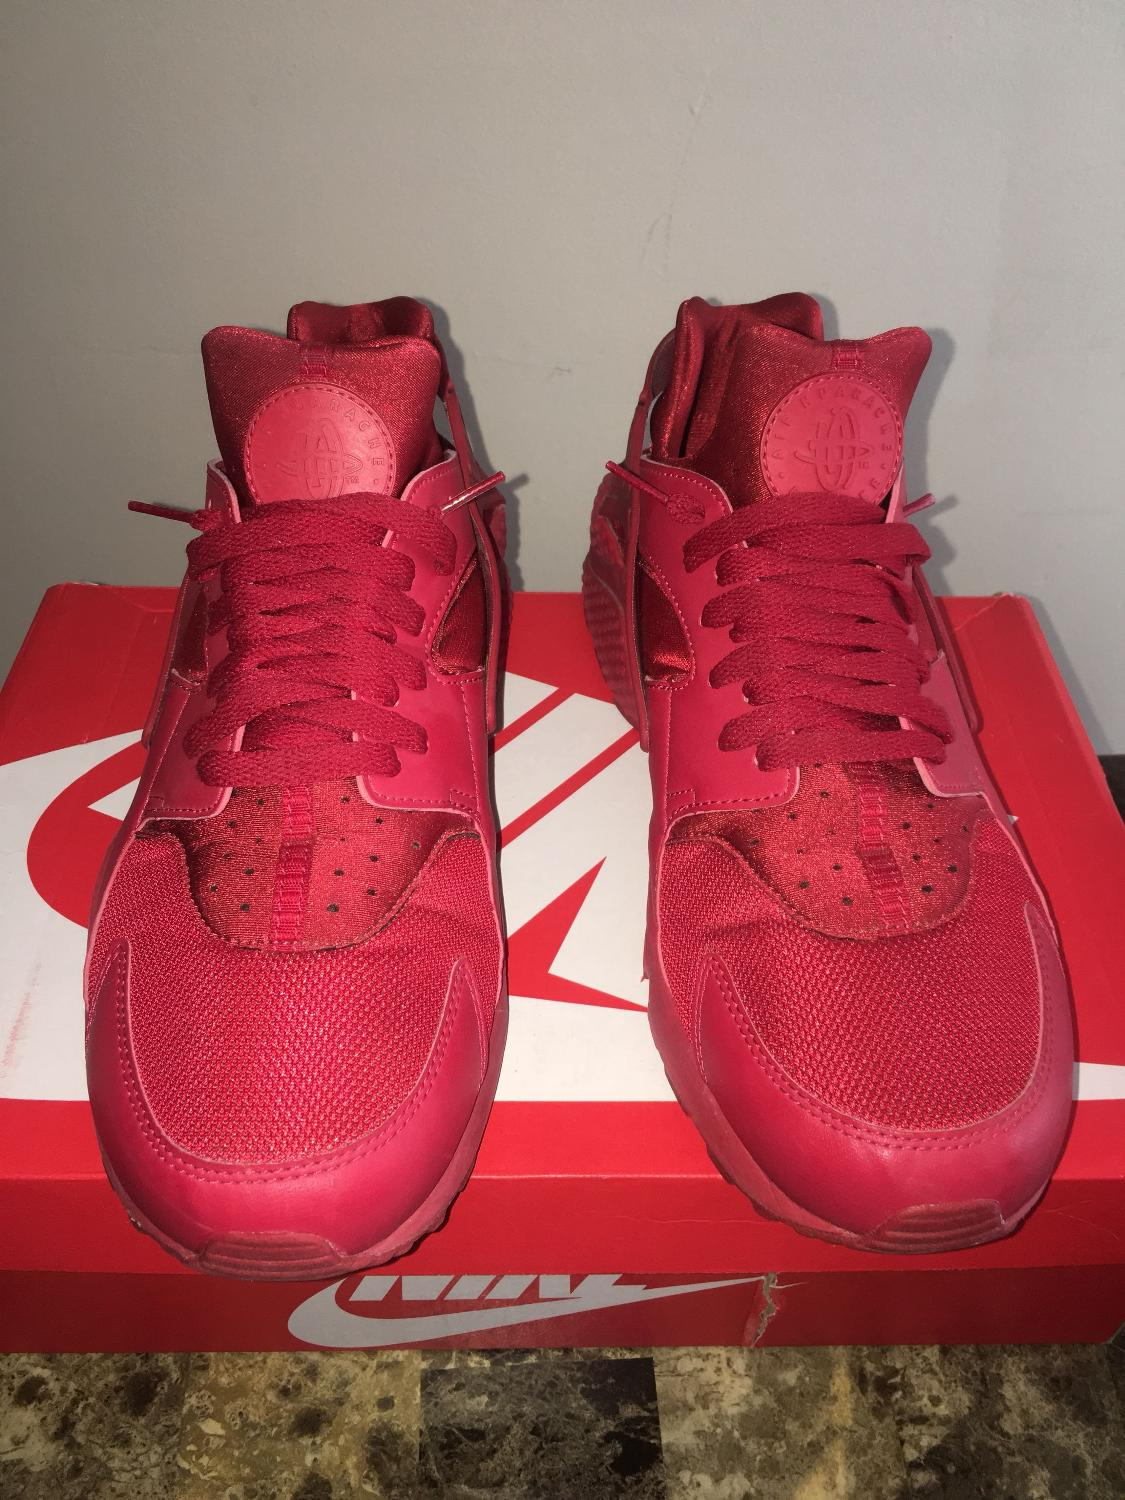 260f62a24c369 Best Nike Air Huarache Triple Red Size 13 for sale in Barrie ...